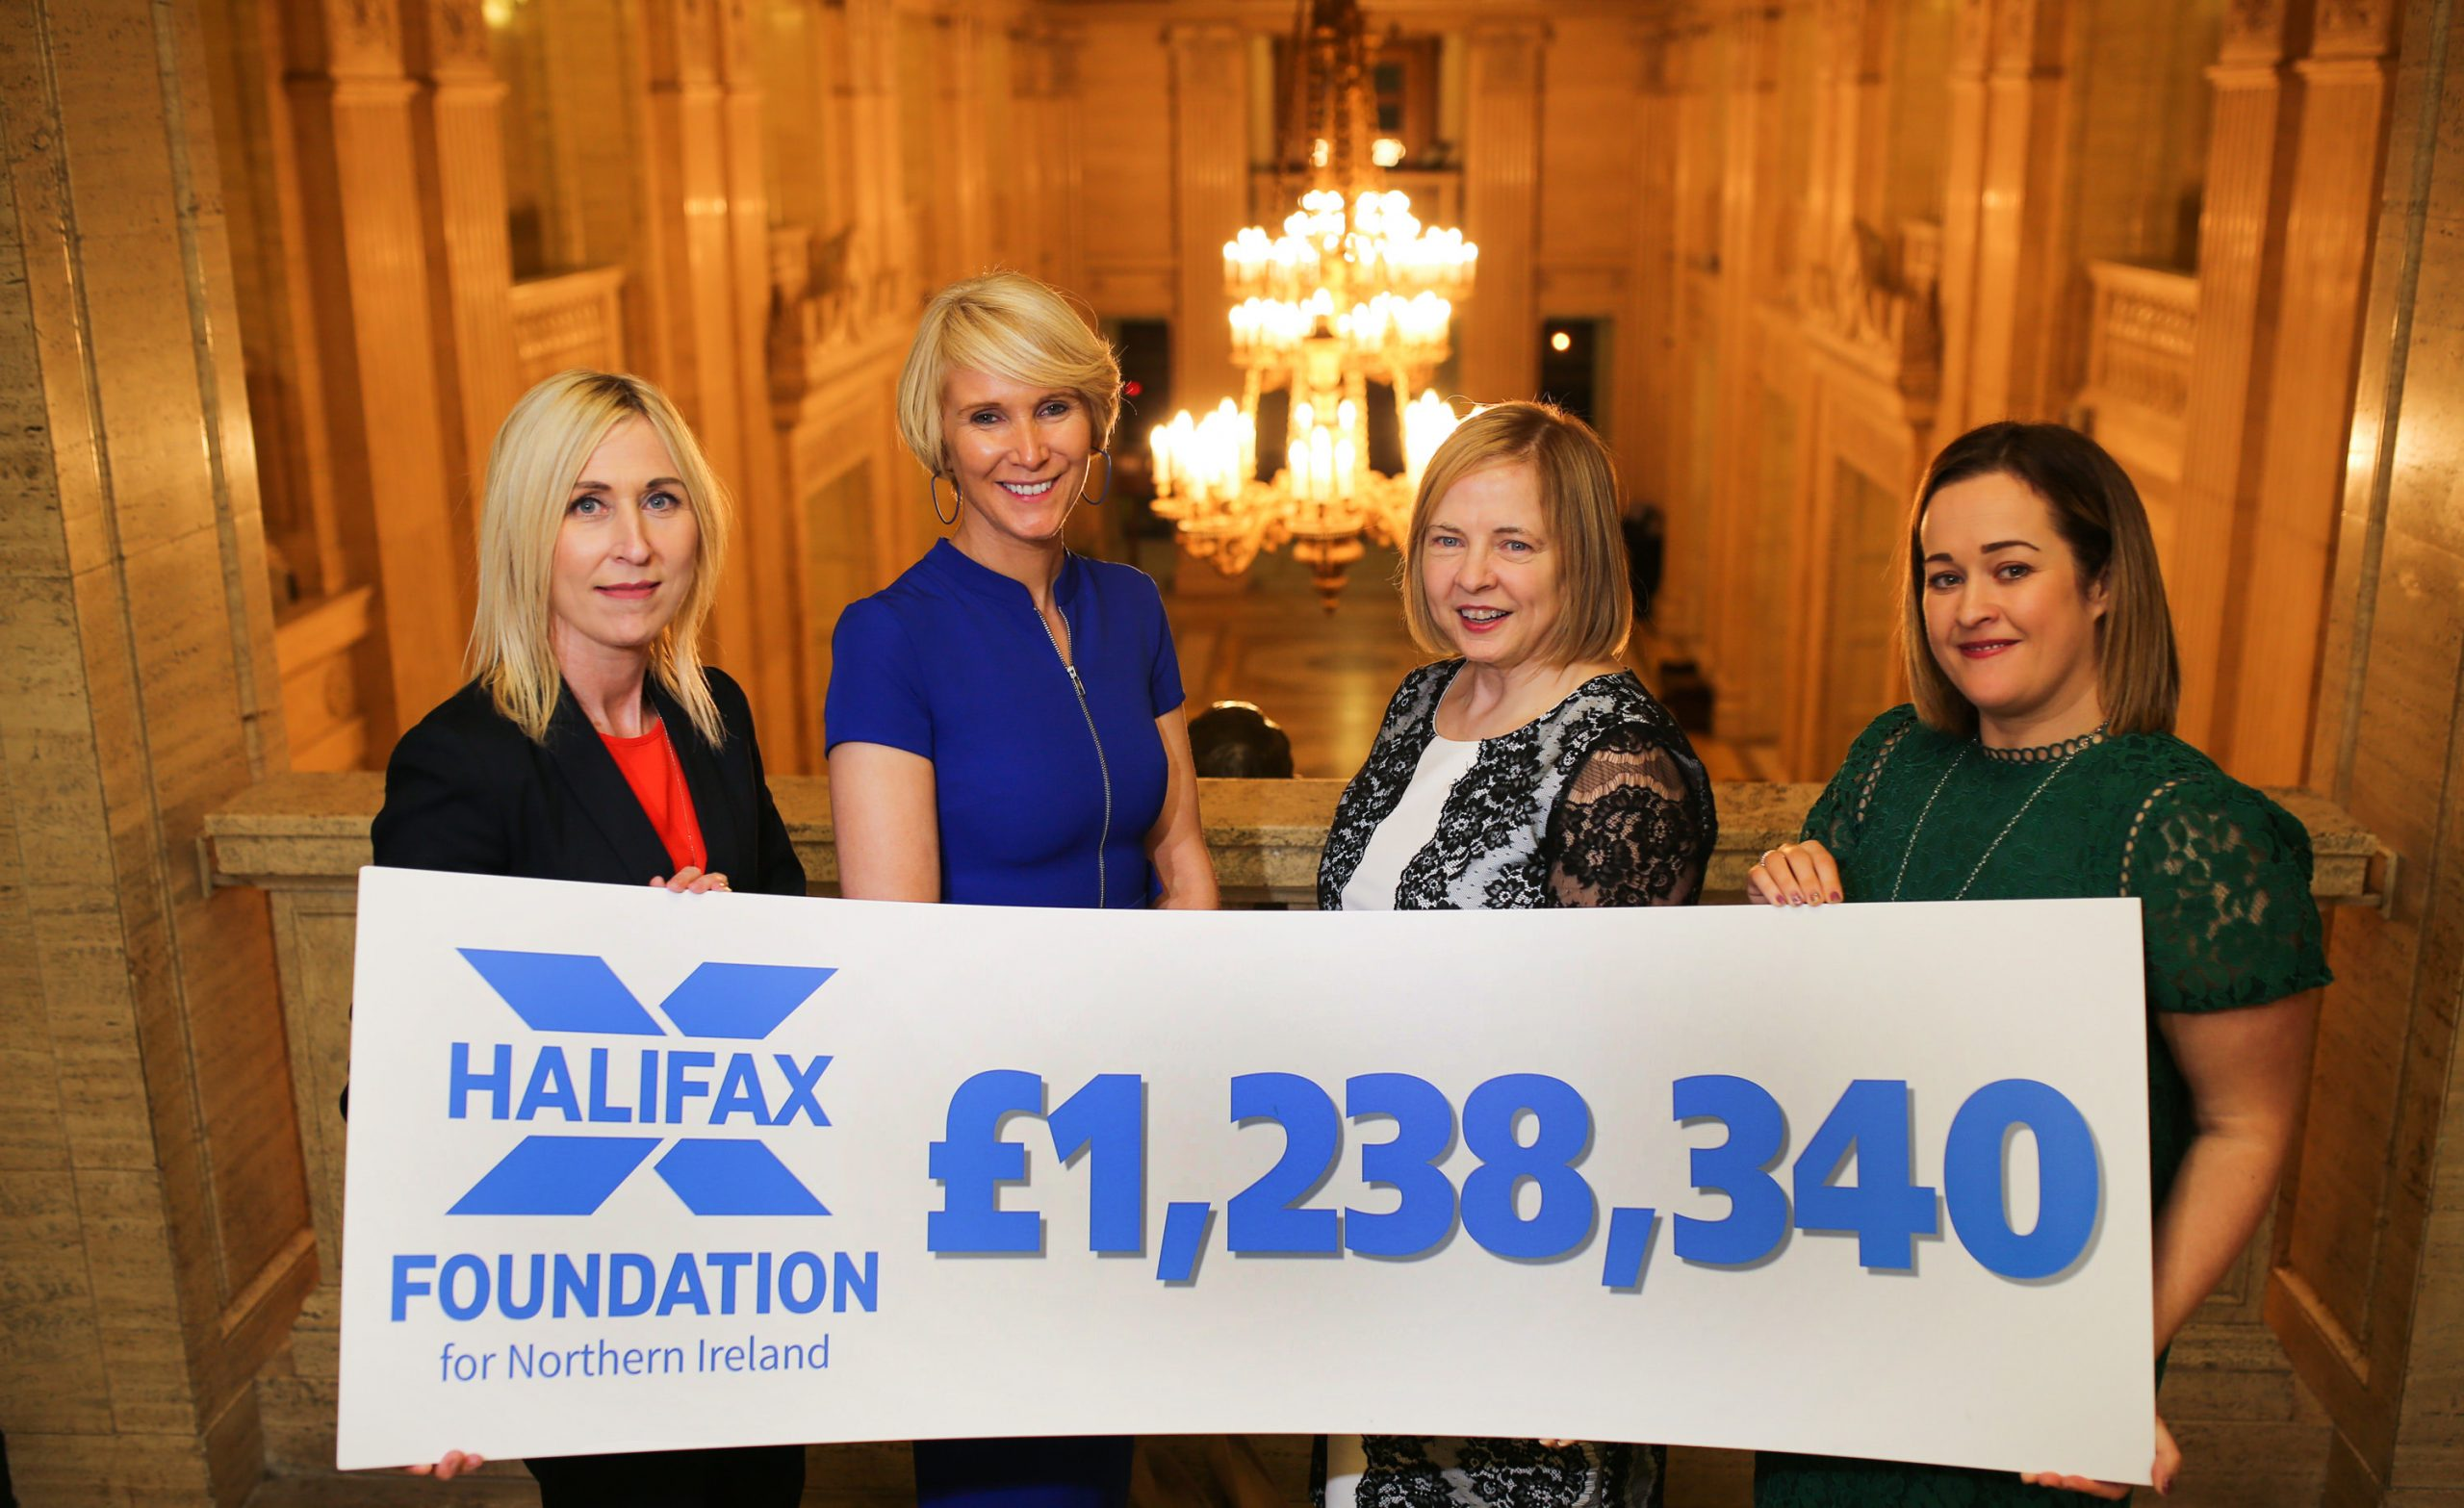 Halifax Foundation for Northern Ireland's £1.2m boost to charities